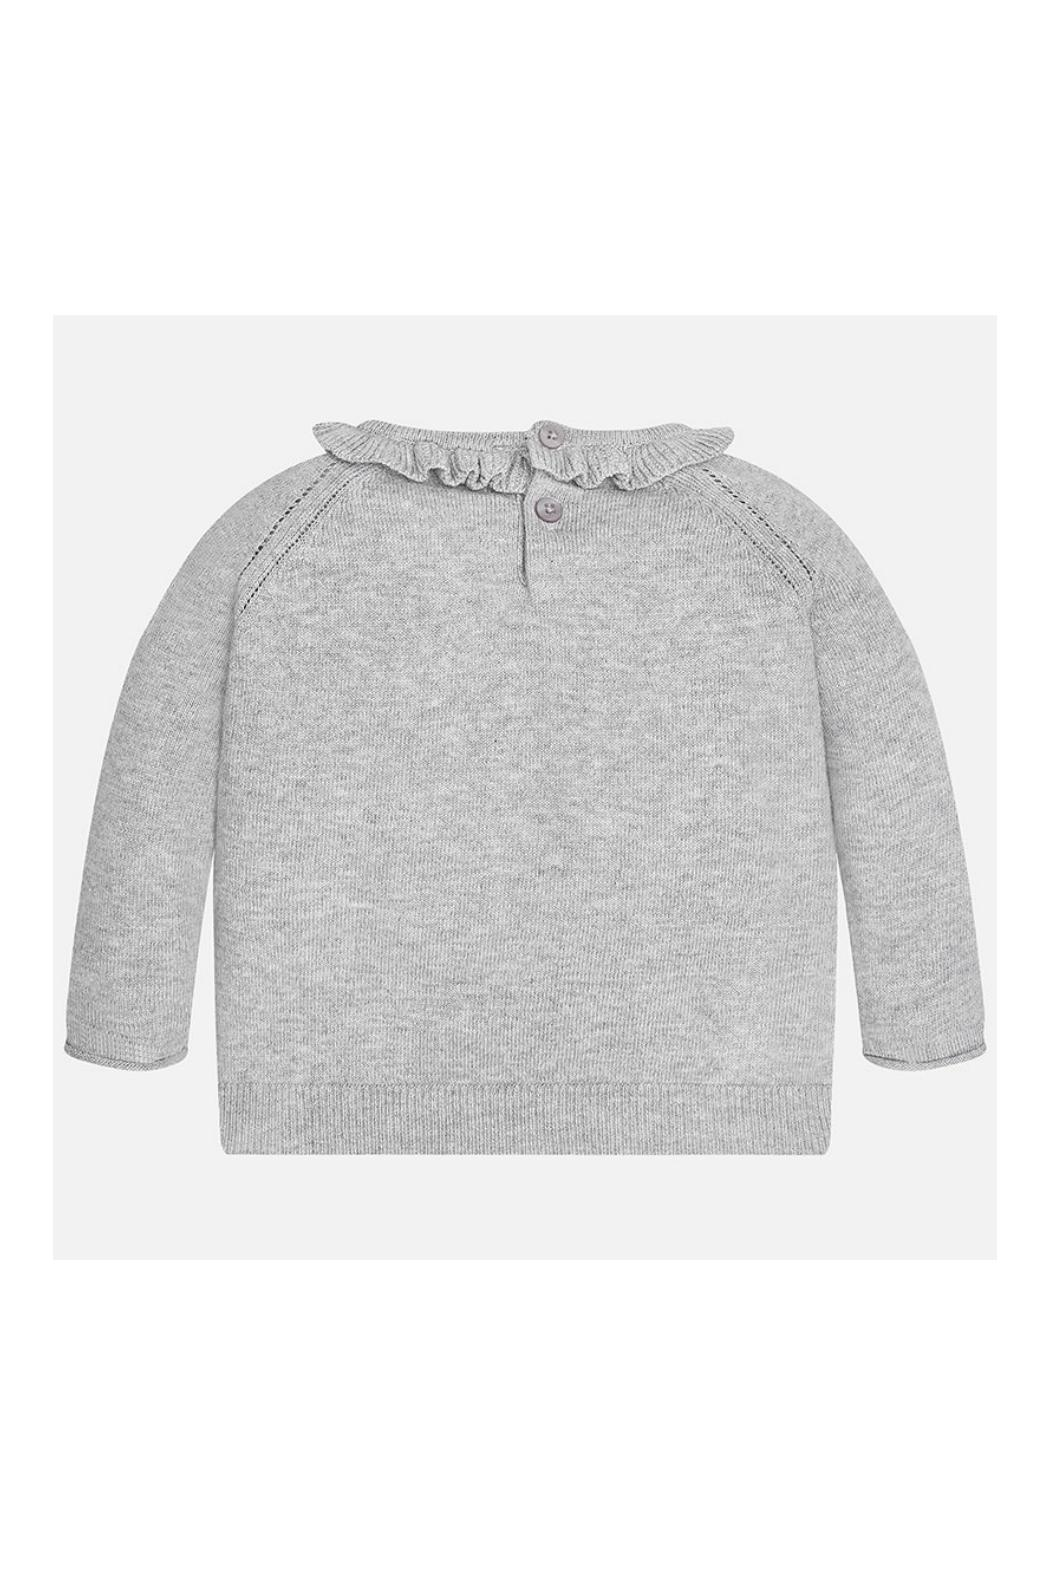 Mayoral Grey Knitted Sweater - Front Full Image